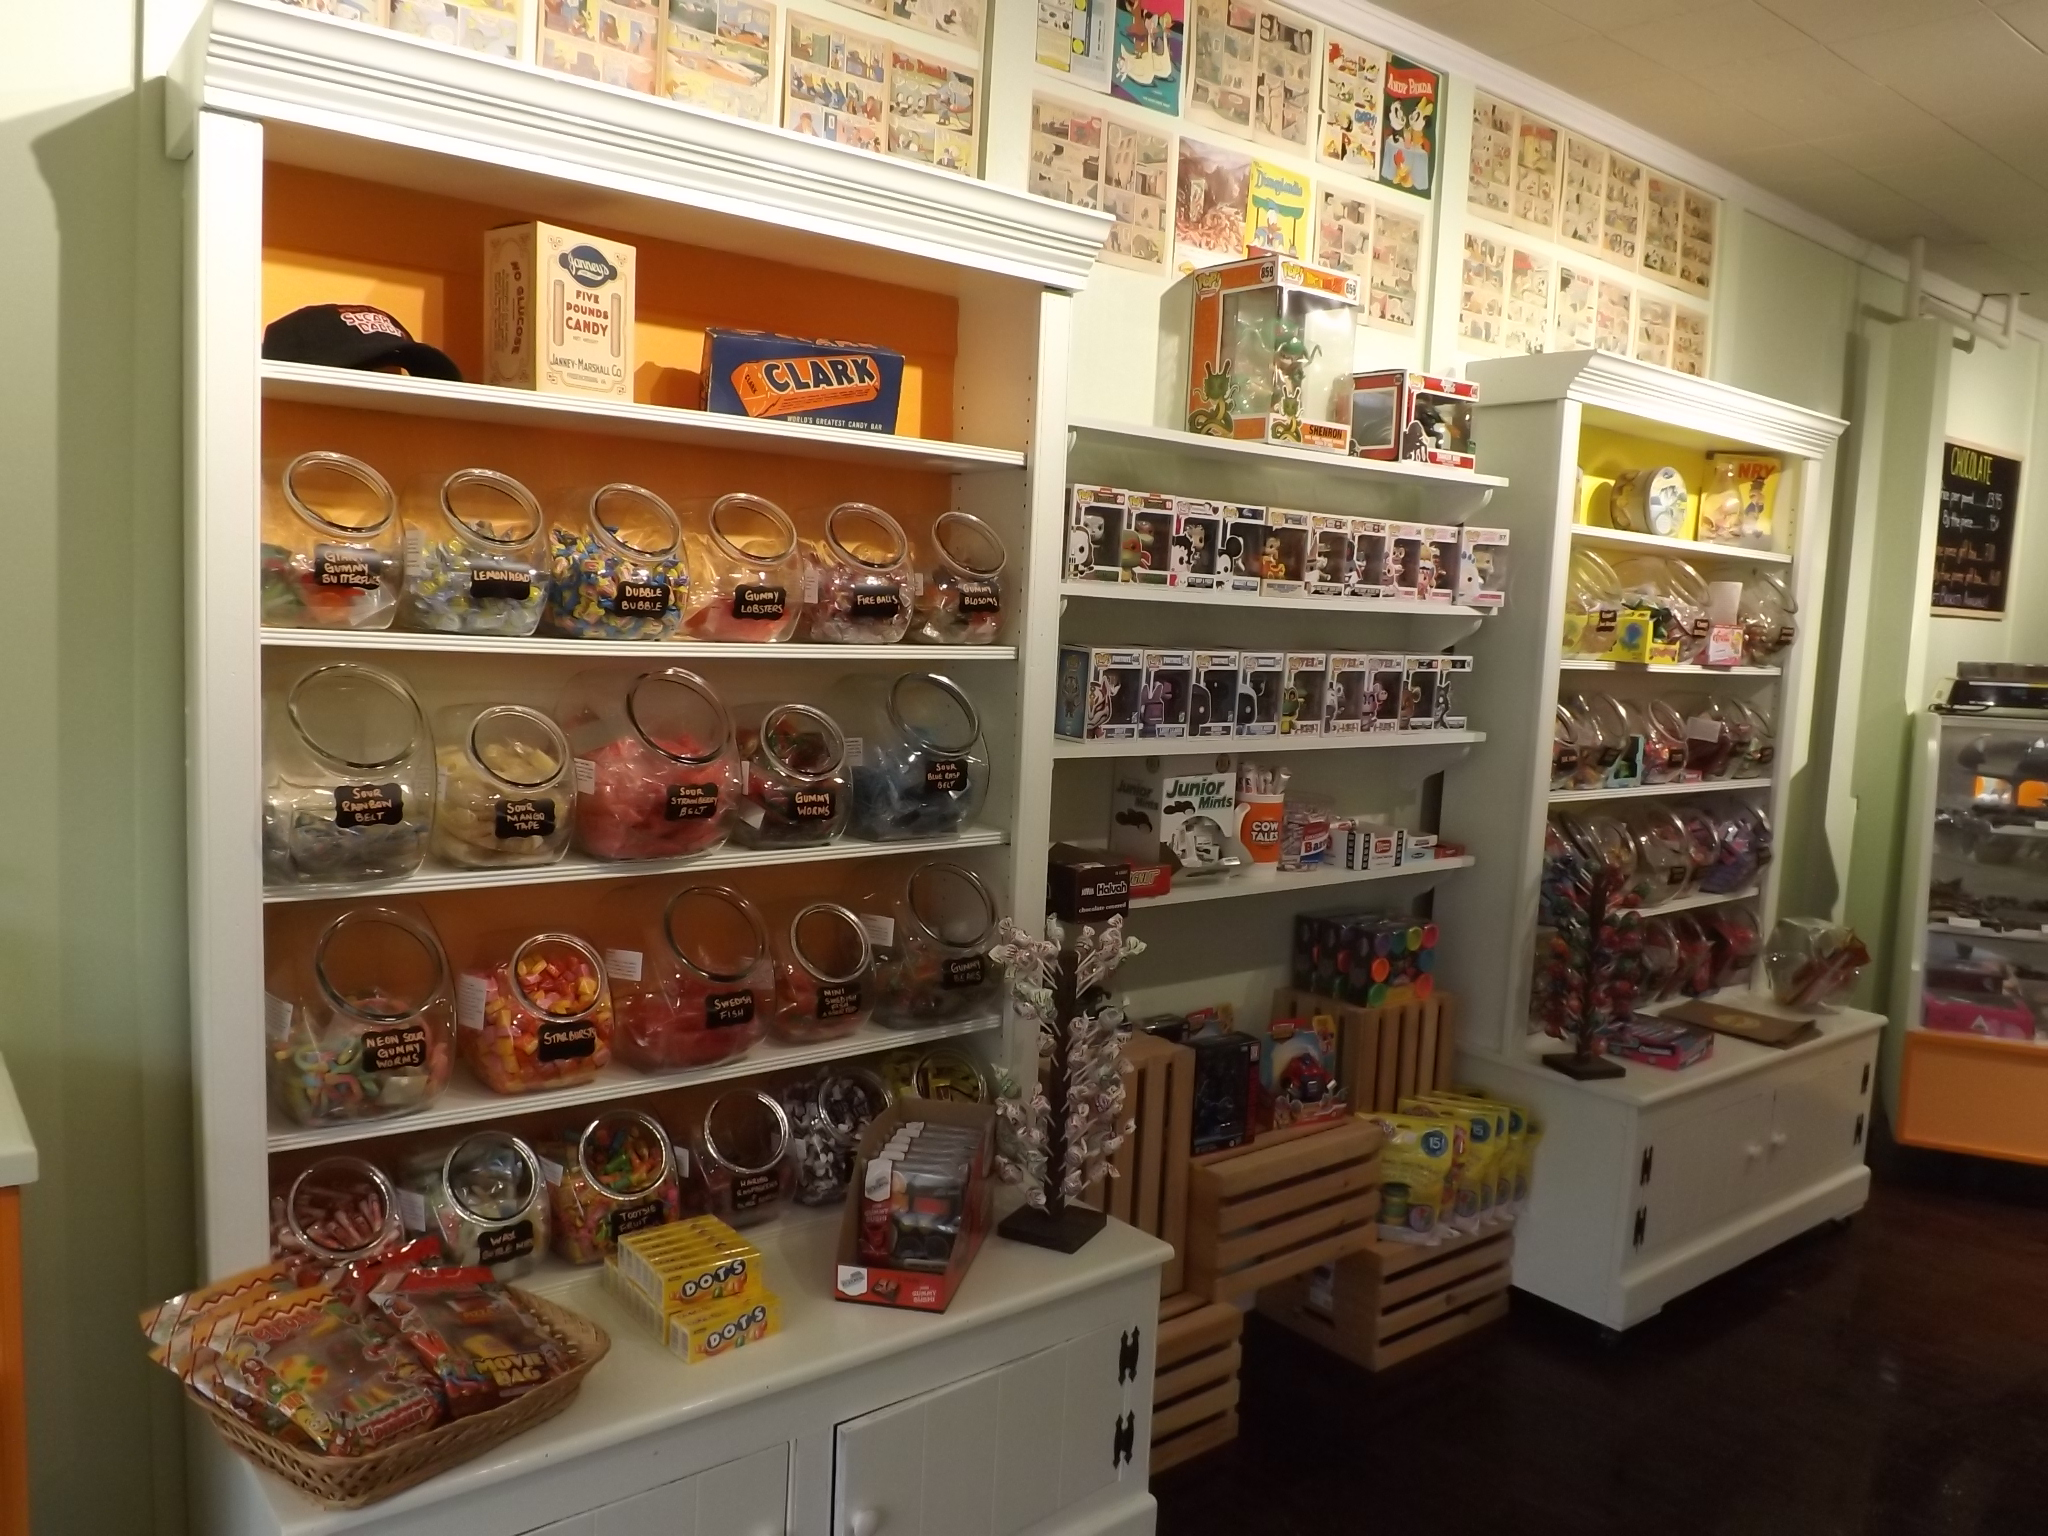 <strong>From Dubble Bubble, Starburst and Dots to candy necklaces, Nerds, Laffy Taffy and more, the shelves at Candy-O's are stocked with an immense variety of nostalgic and modern candies. <em>Photo by Kaitlin Lyle</em></strong>